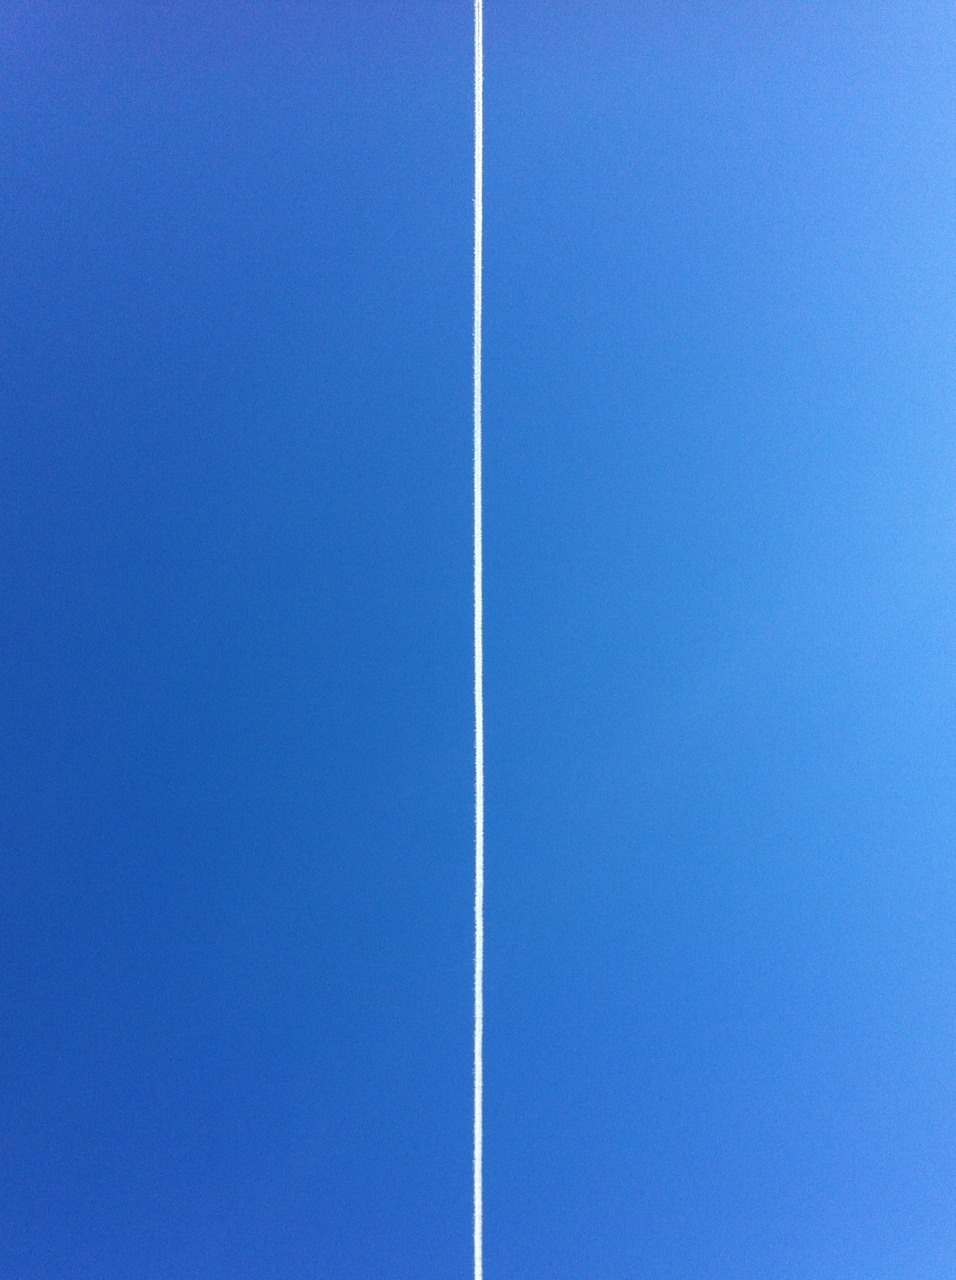 A blue, blue March sky.  Taken with Click! App, cropped  with Snapseed.